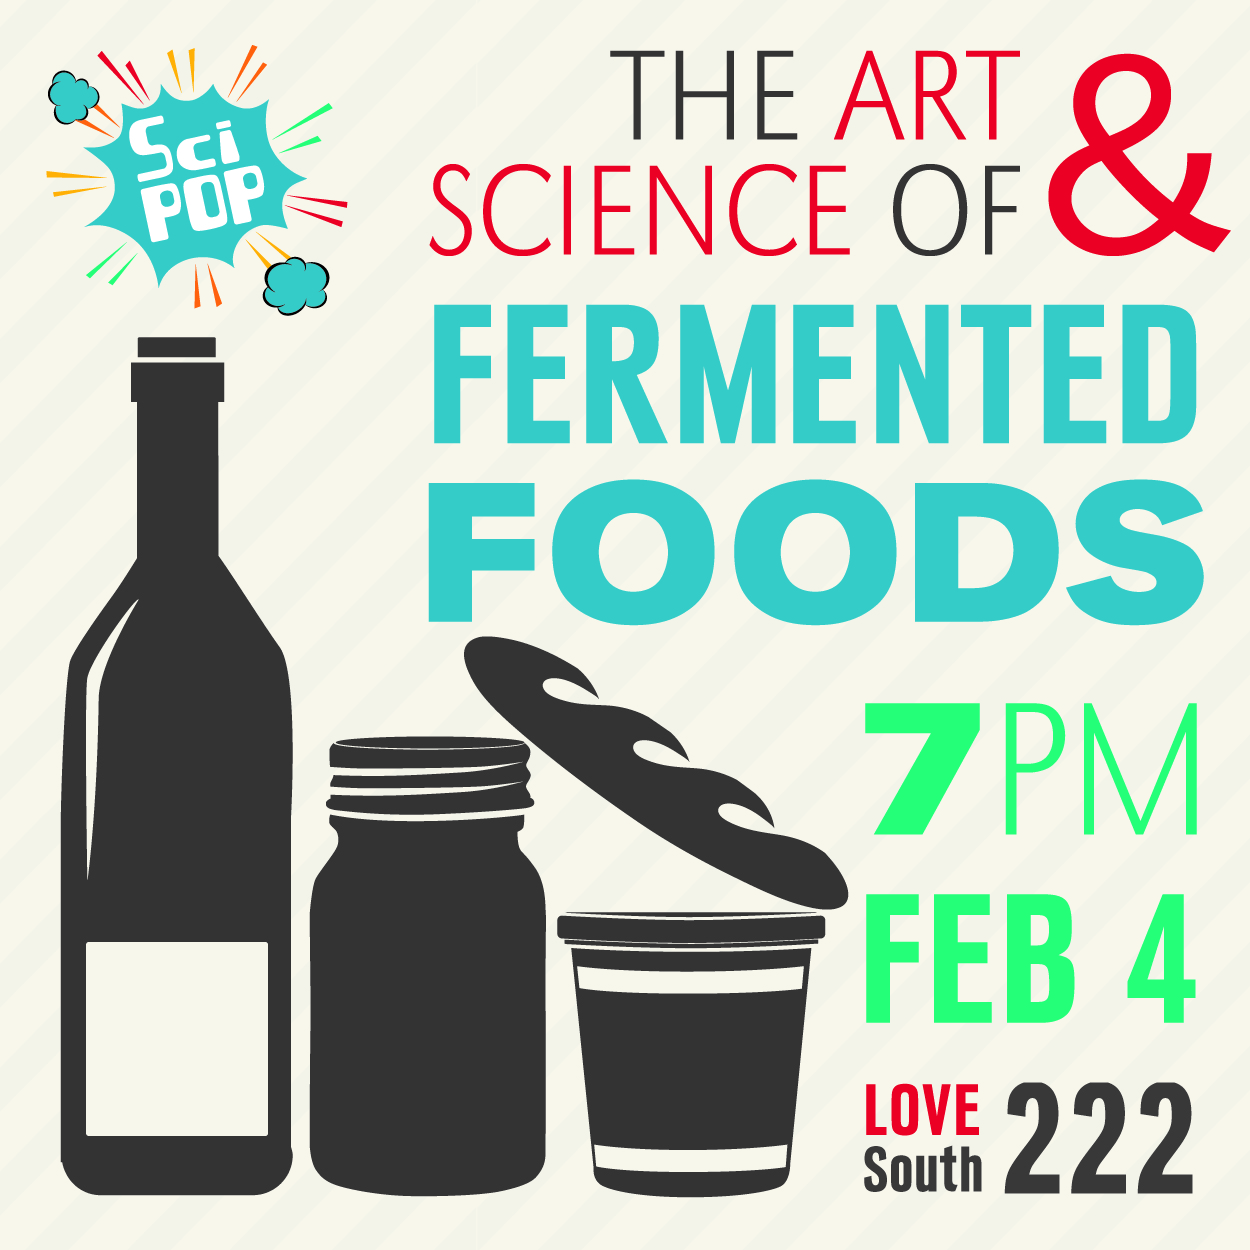 The Art & Science of Fermented Foods image